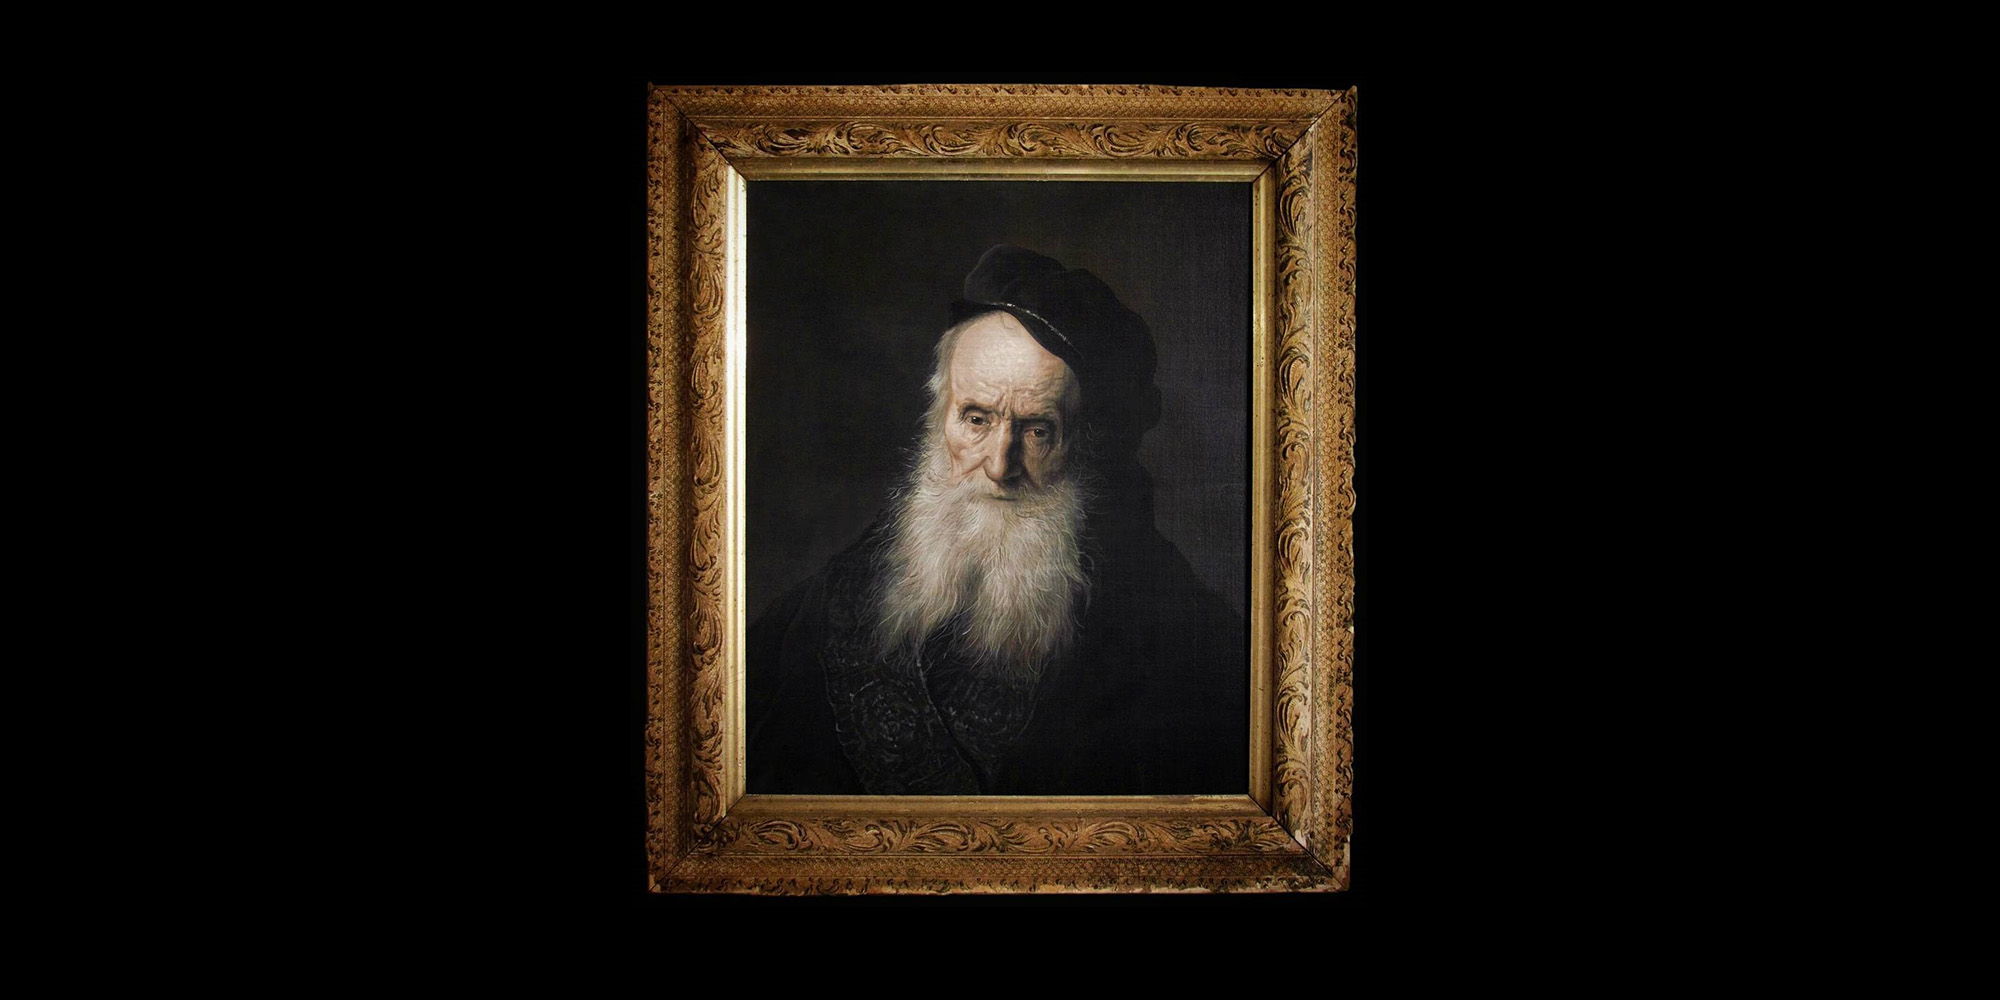 Daryl's version of Jan Lieven's Study of an old man. Acrylic on canvas in an antique frame.